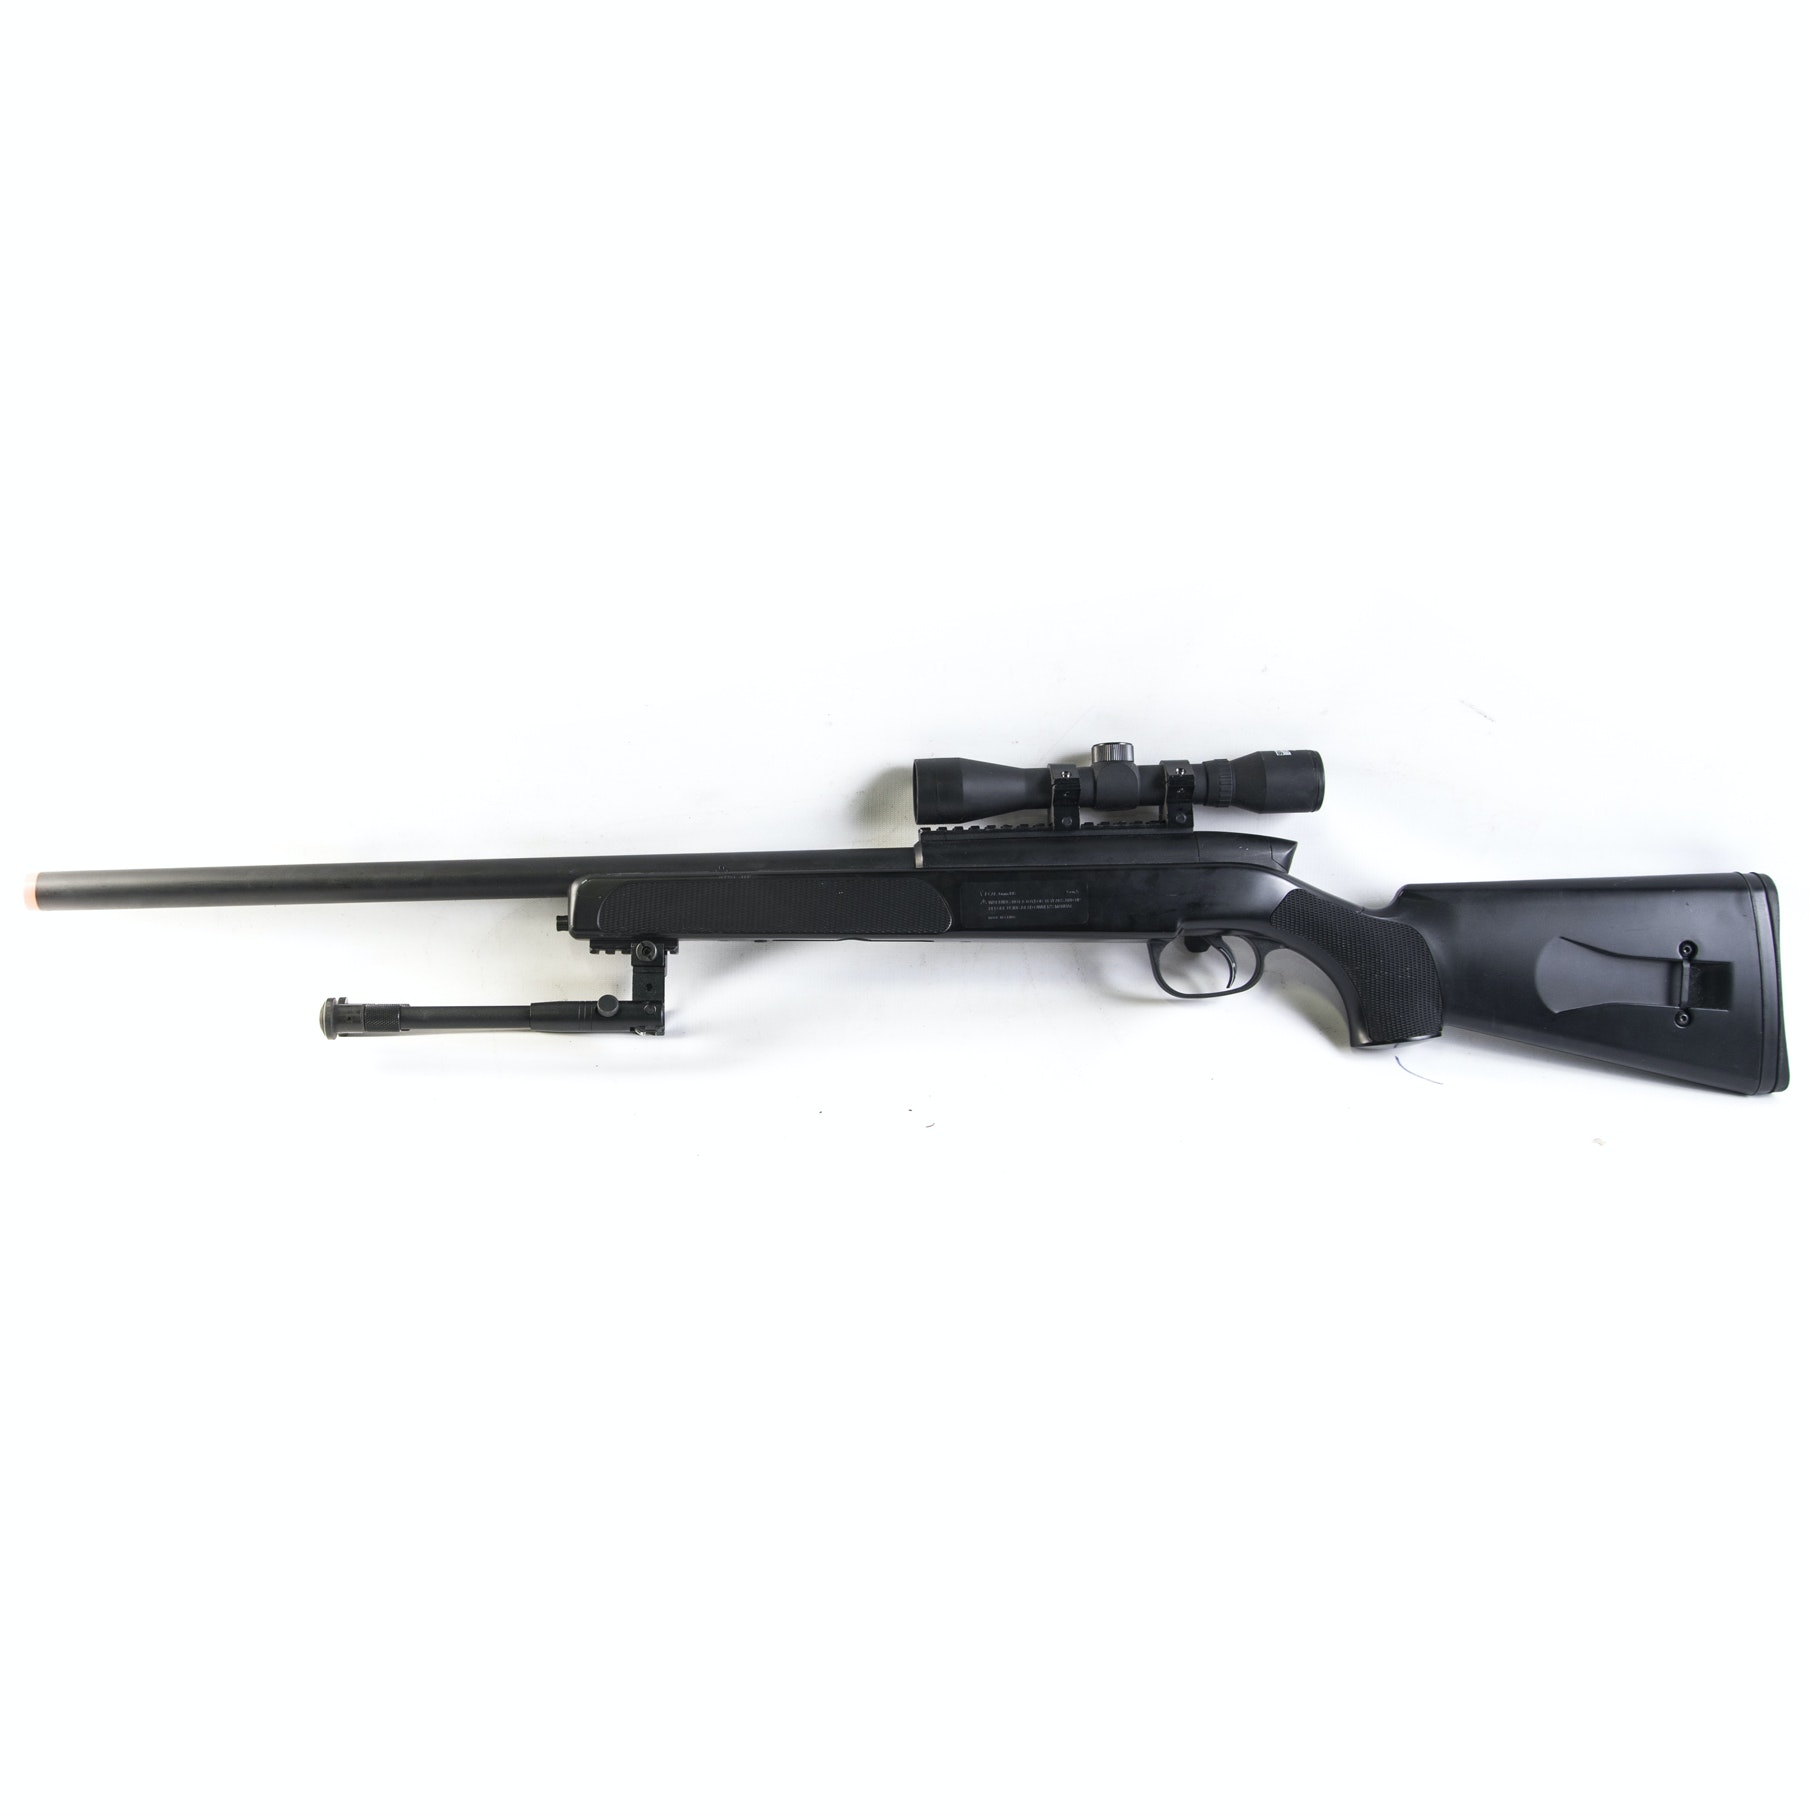 Swiss Arms Air Rifle With Scope and Bipod